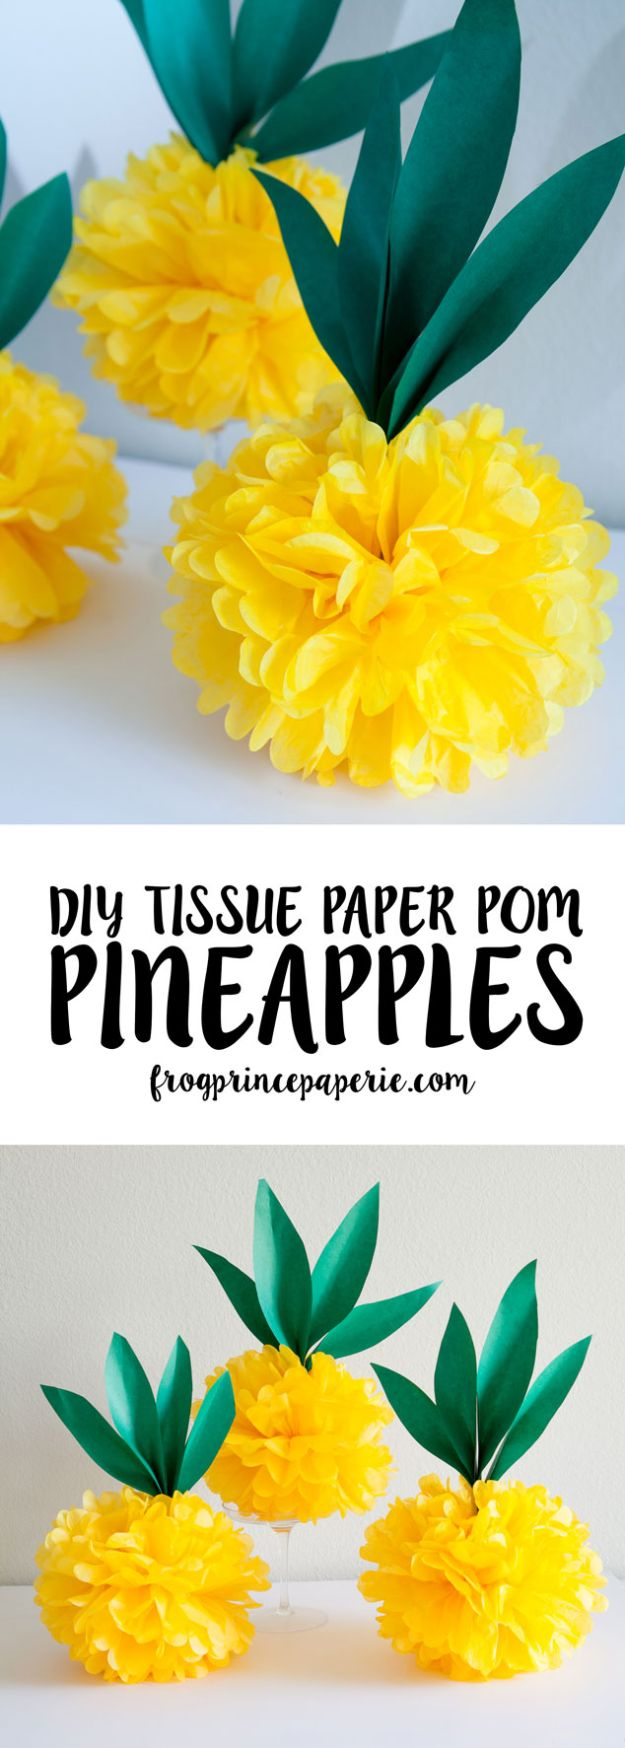 Pineapple Crafts - Luau Tissue Paper Pineapple Pouf - Cute Craft Projects That Make Cool DIY Gifts - Wall Decor, Bedroom Art, Jewelry Idea